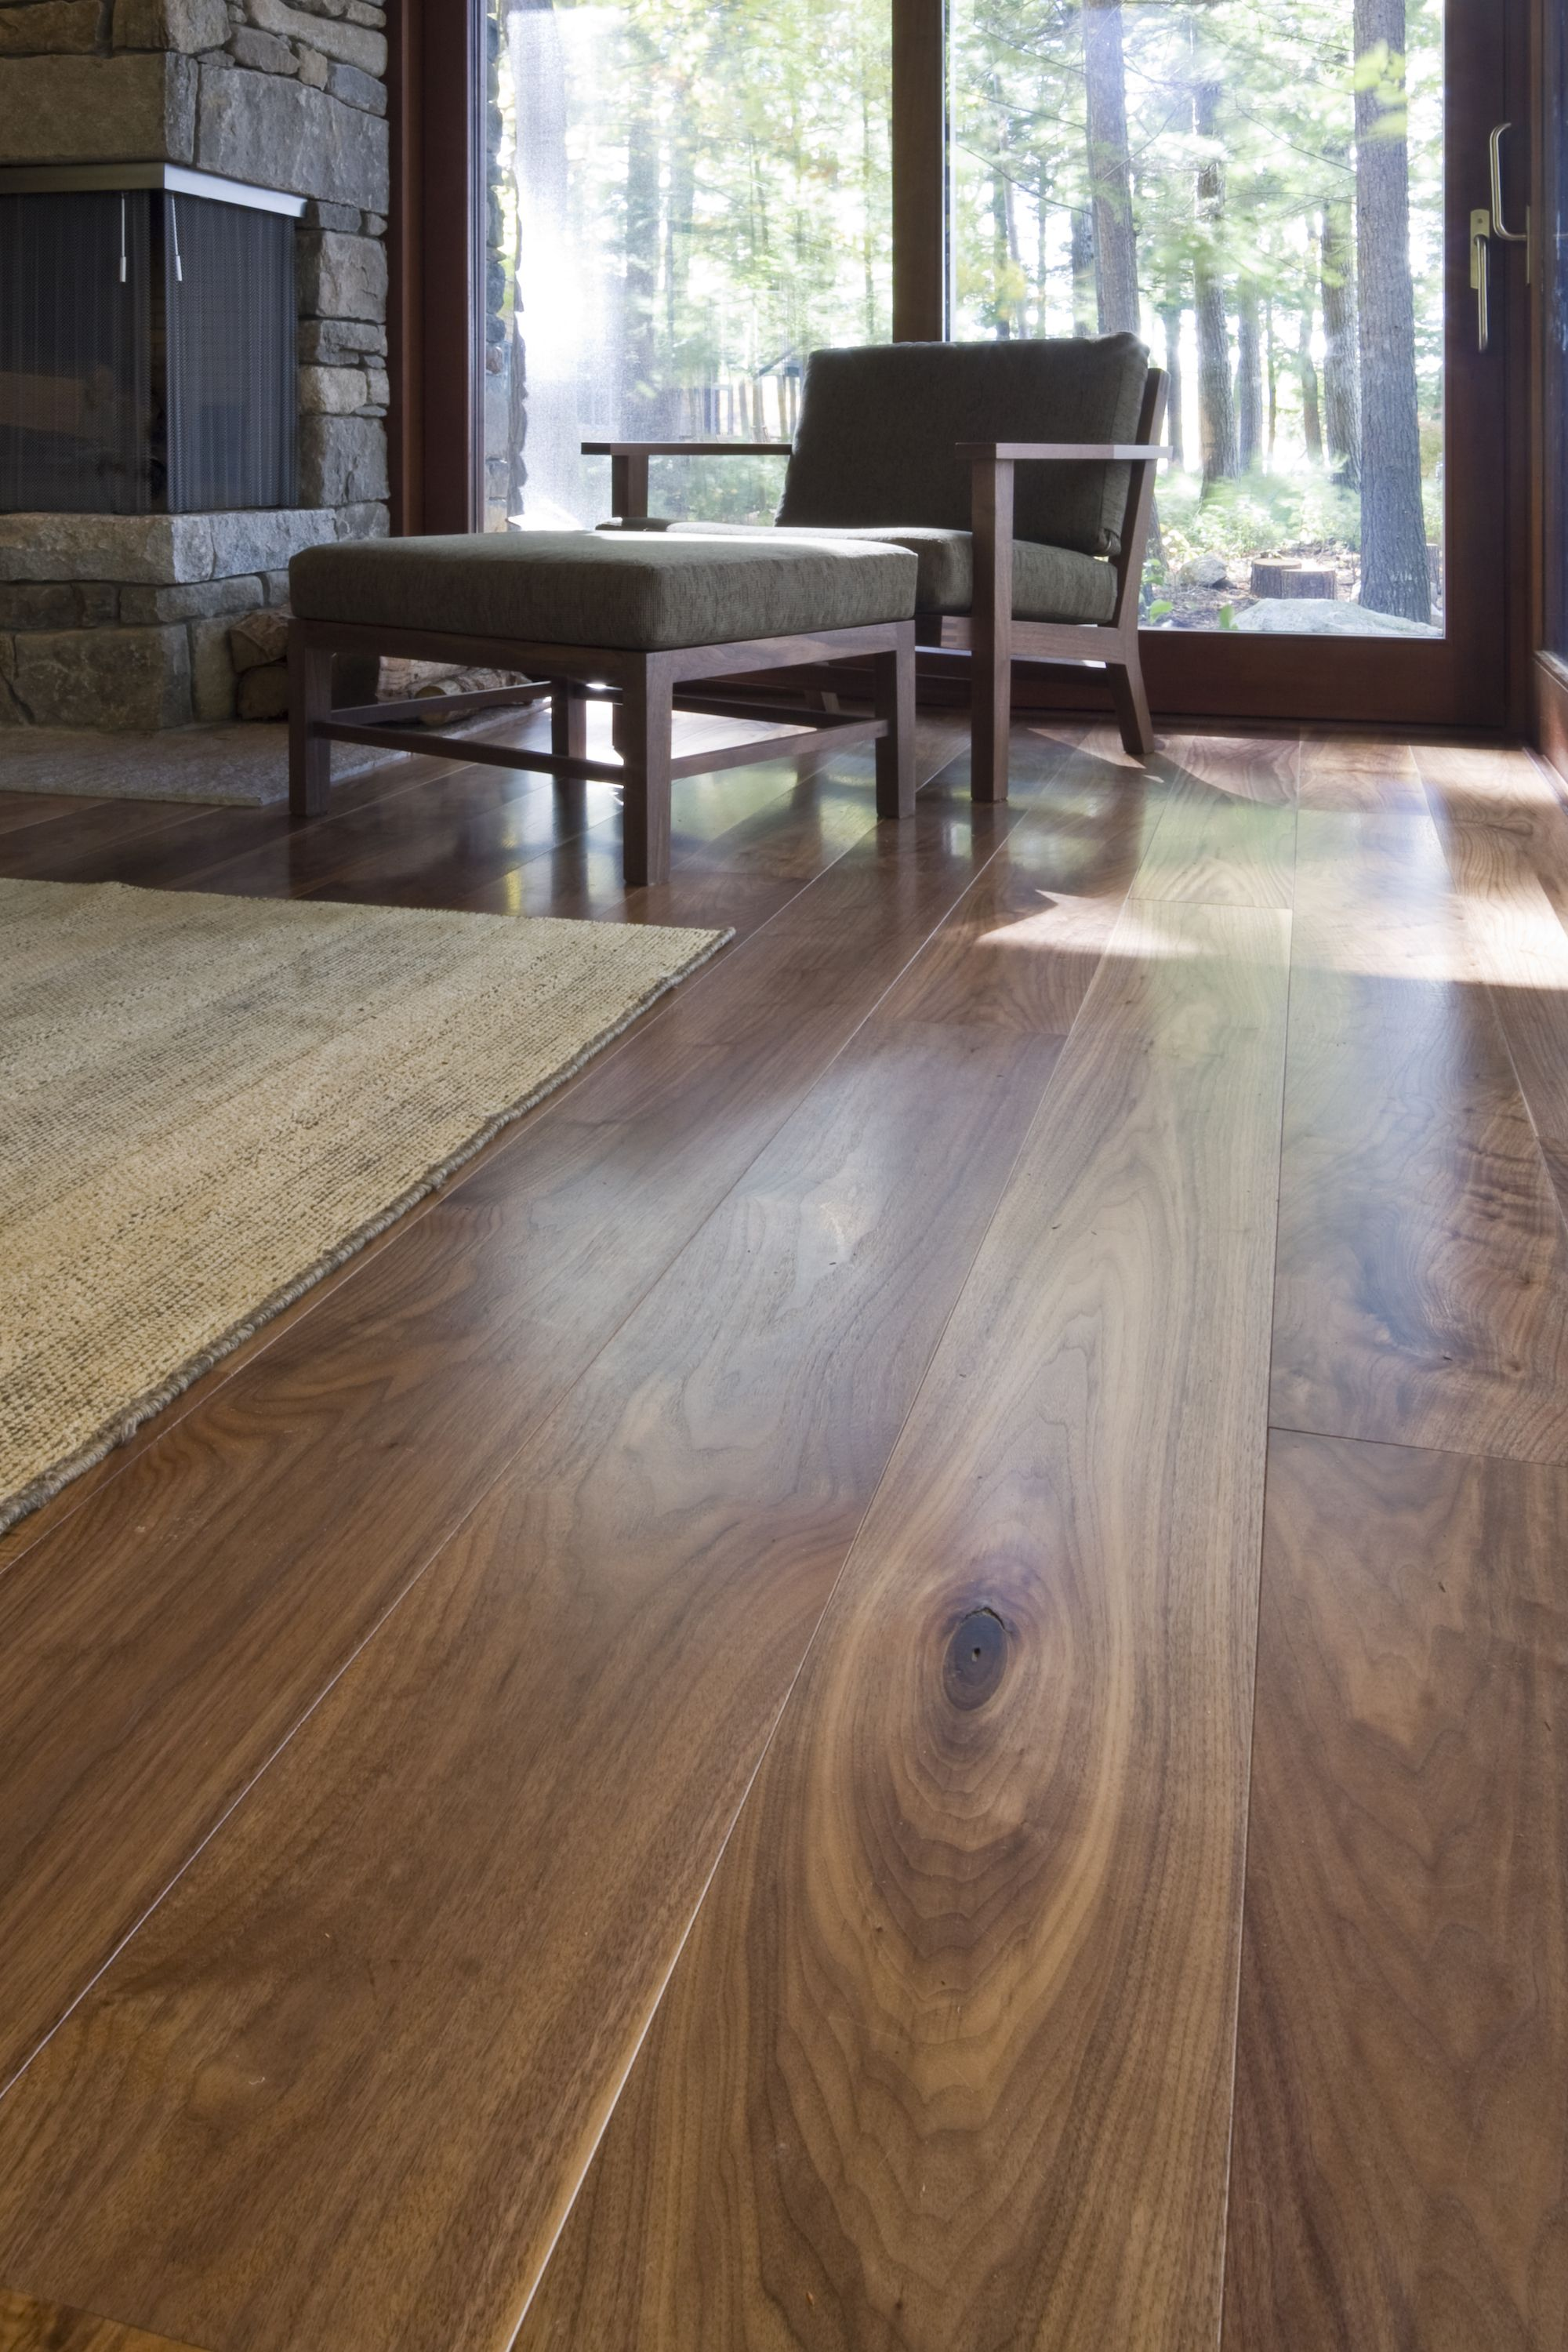 Carlisle Wide Plank Floors Walnut Flooring In A Room With